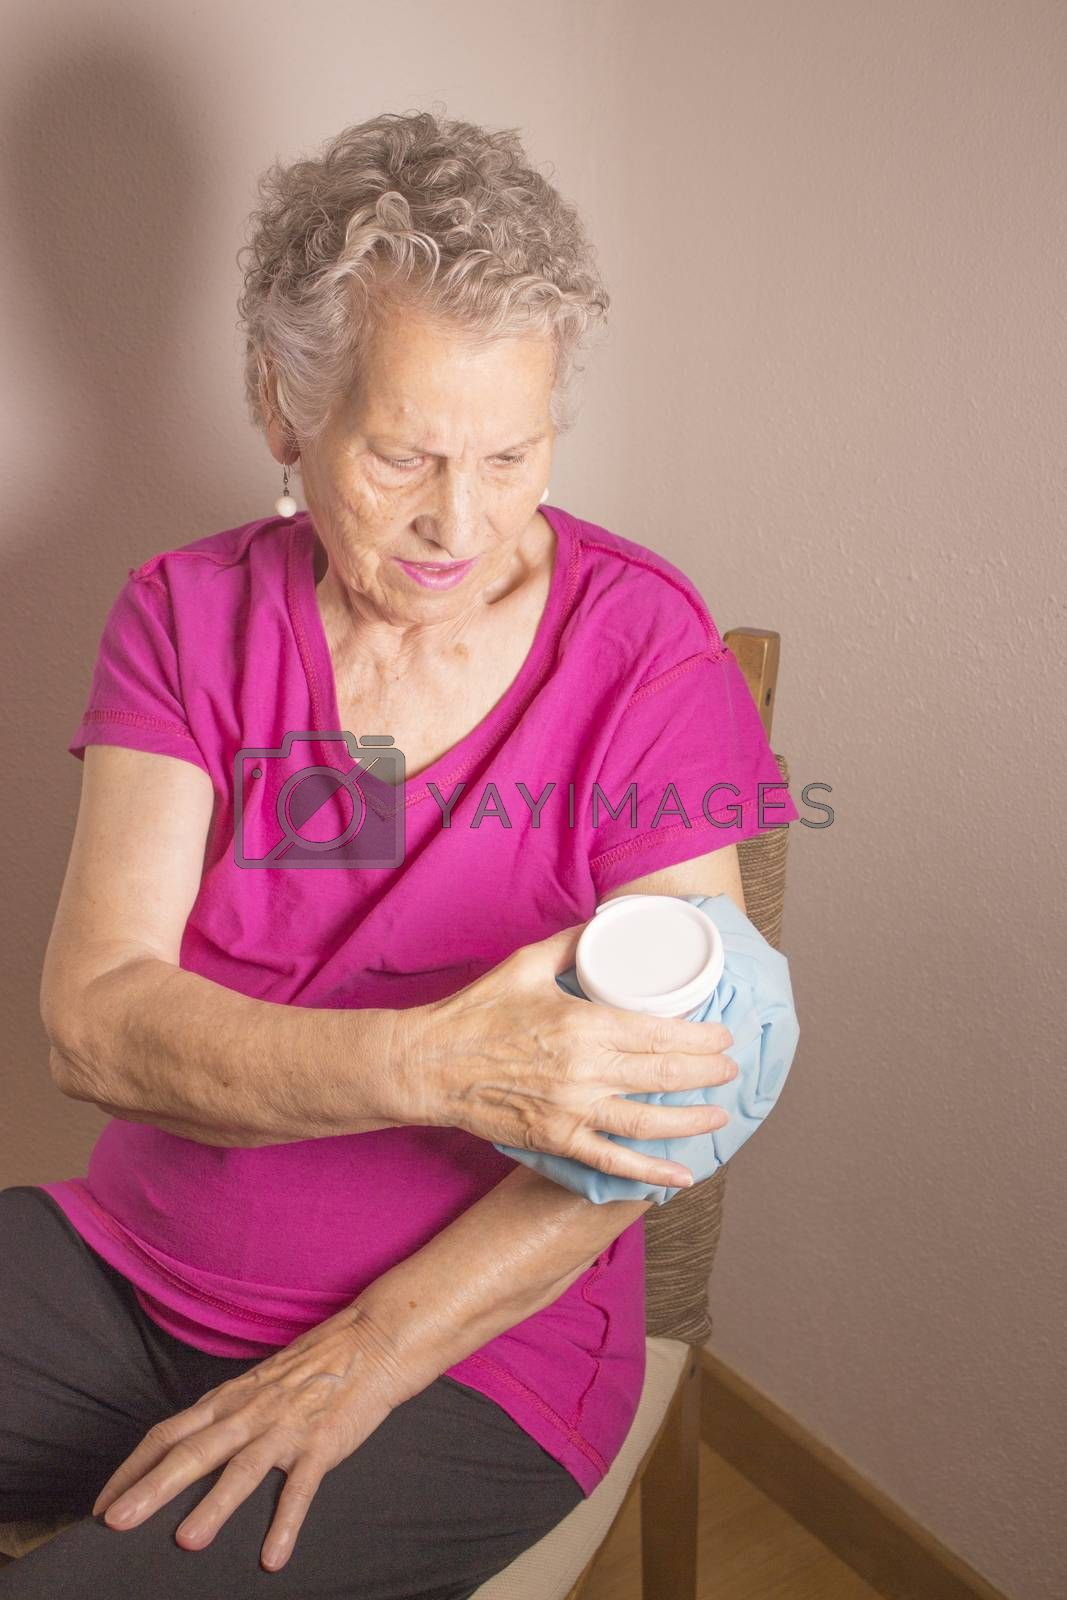 Old woman with shoulder and arm pain by GemaIbarra